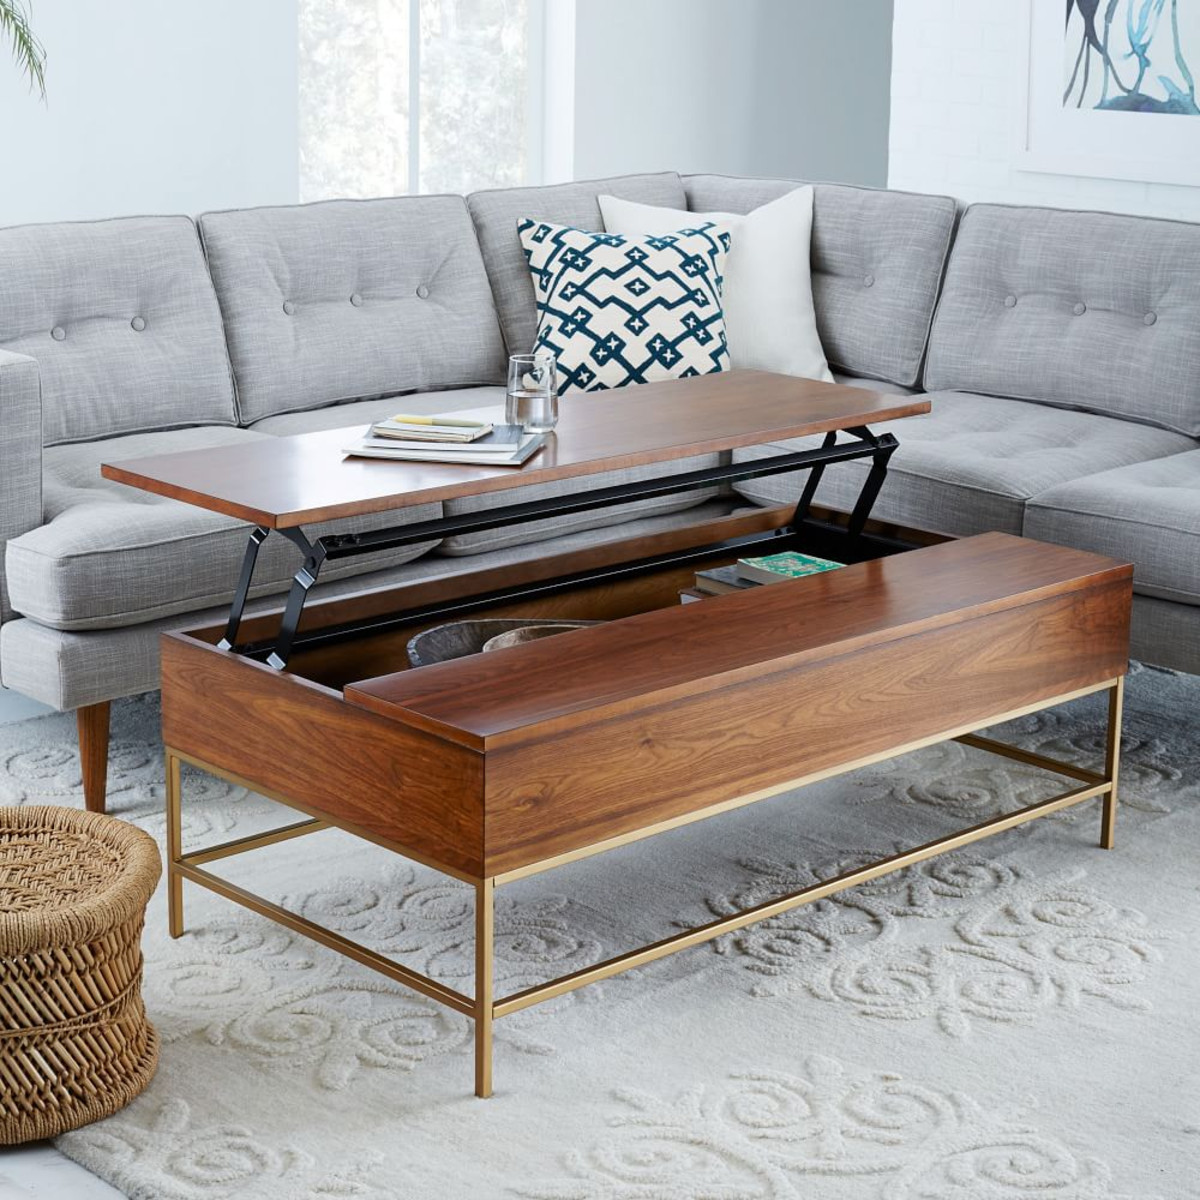 Best ideas about Coffee Table With Storage . Save or Pin 8 Best Coffee Tables For Small Spaces Now.